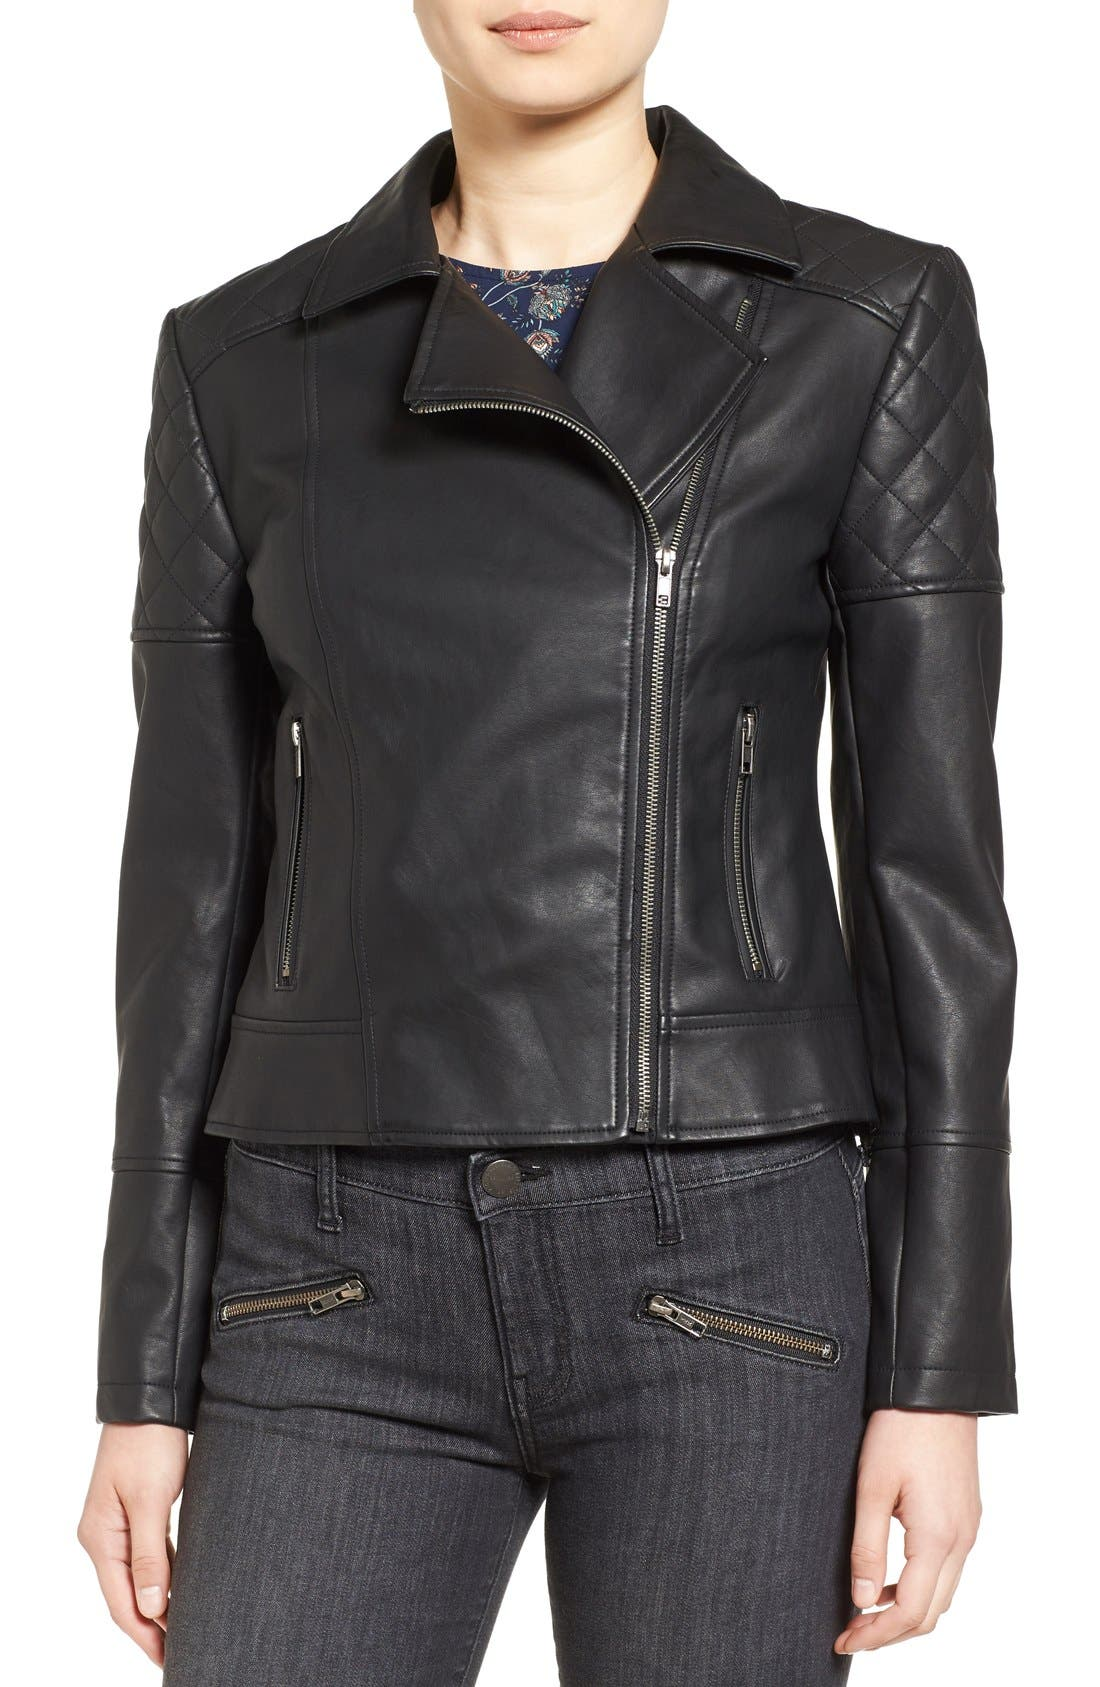 CUPCAKES AND CASHMERE, 'Breck' Faux Leather Moto Jacket, Alternate thumbnail 4, color, 001